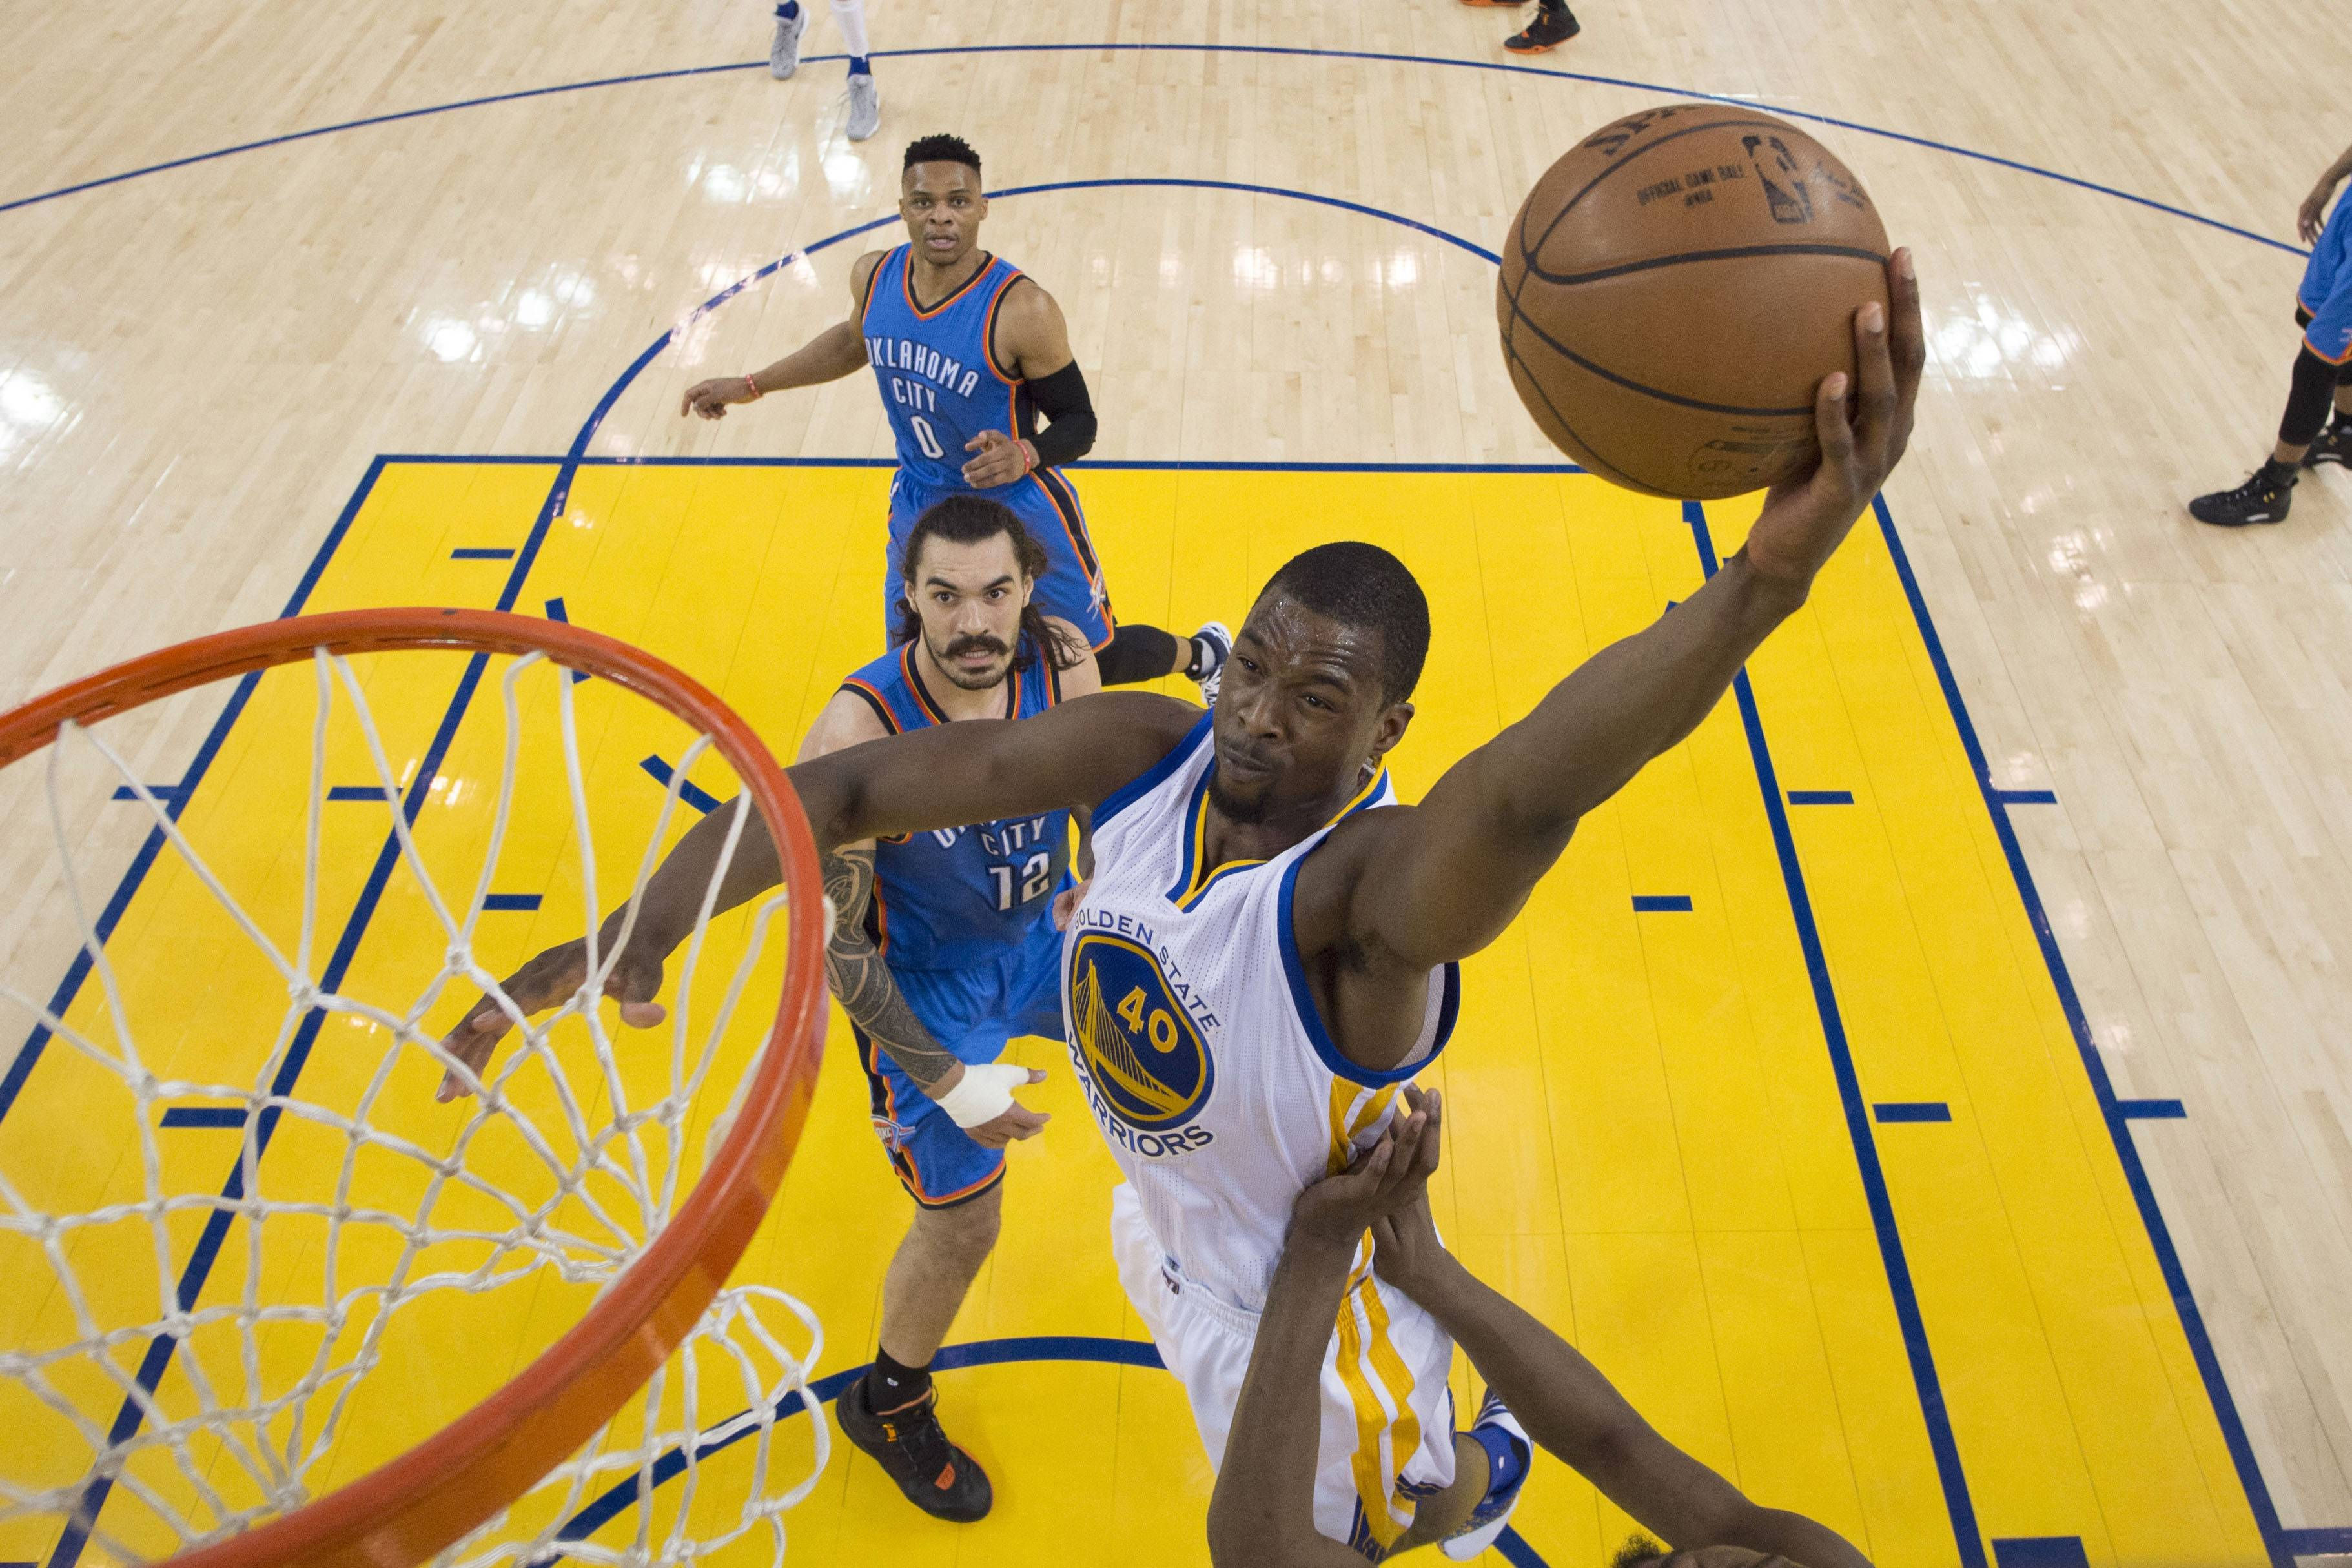 Golden State Warriors forward Harrison Barnes should be the Bulls' top target once free agency opens Thursday night, according to Mike McGraw.